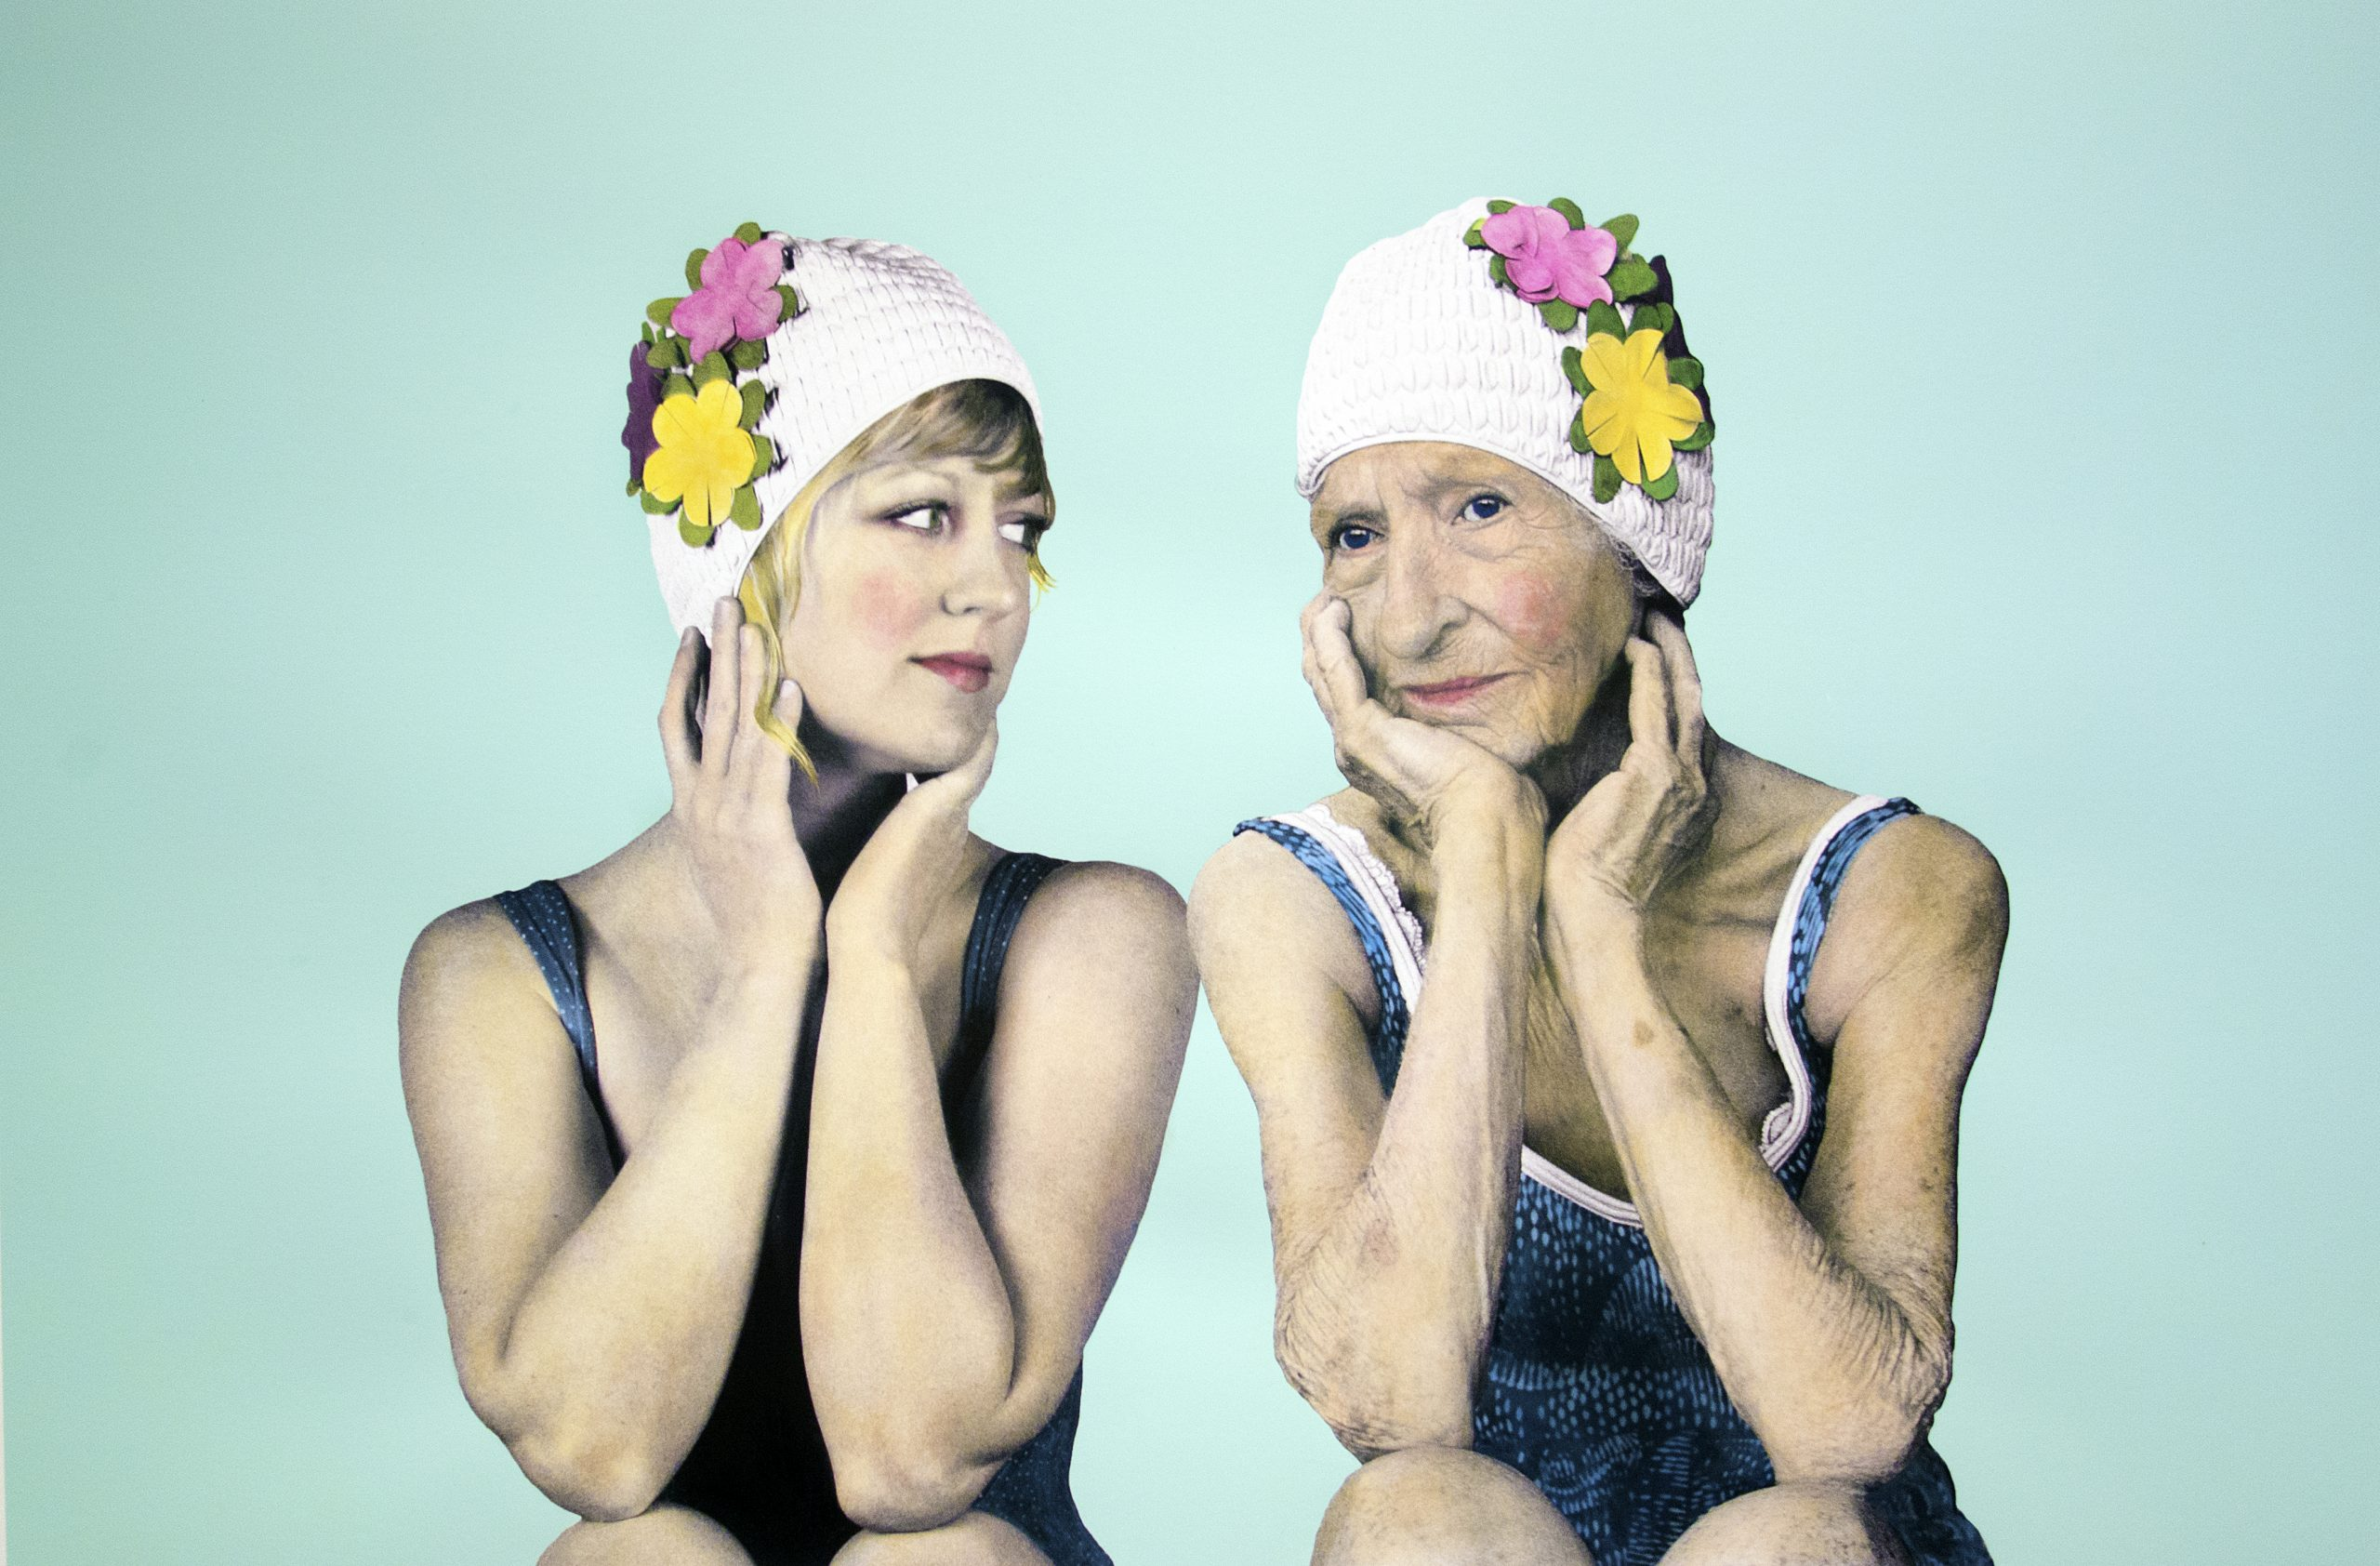 Synchronized Swimmers – An interview with artist Jenny Fine